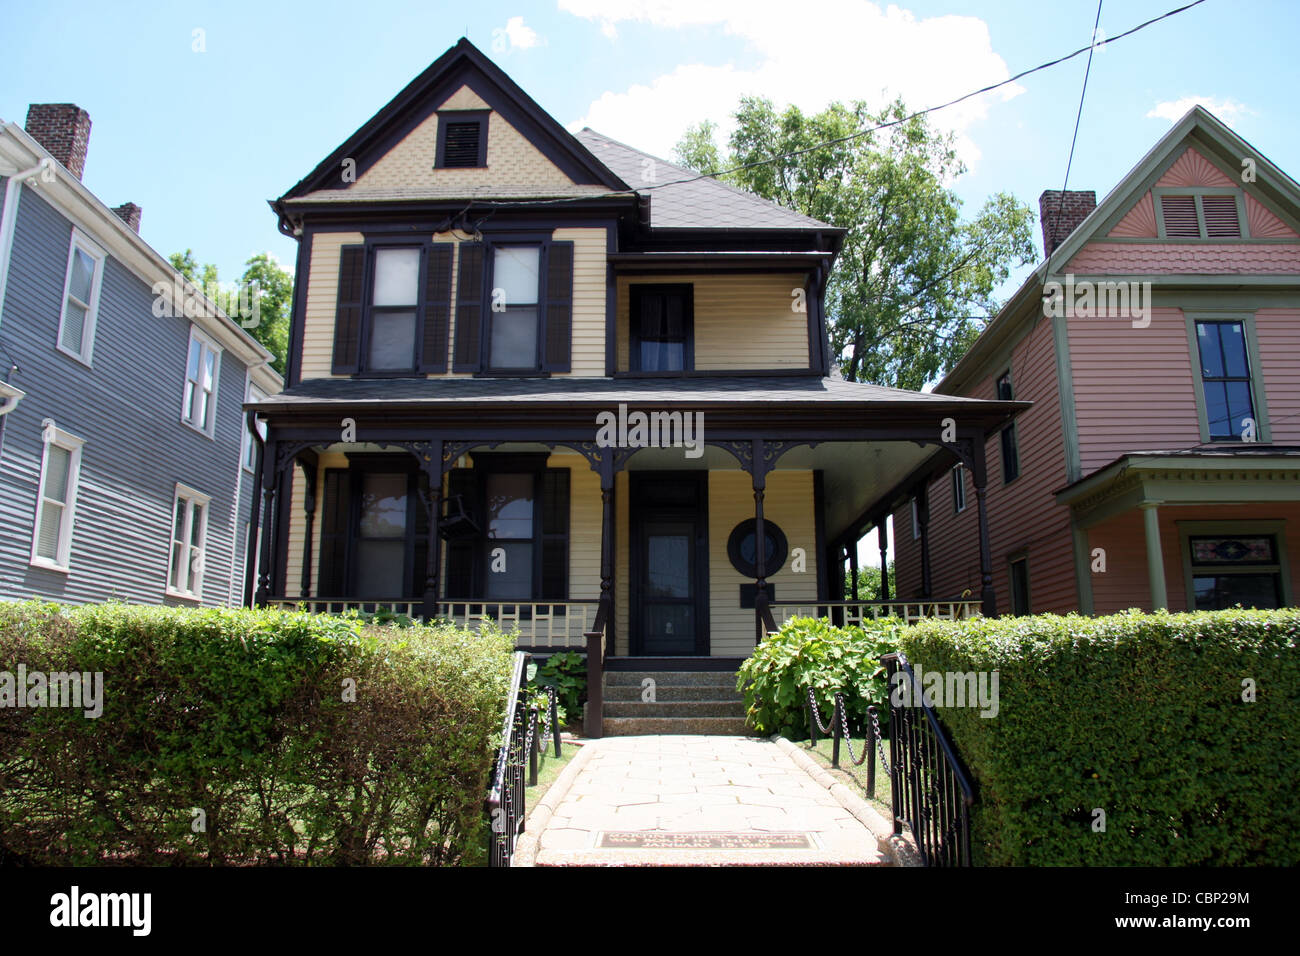 Martin Luther King, Jr. was born in this house at 501 Auburn Avenue, Atlanta, Georgia on January 15, 1929 - Stock Image